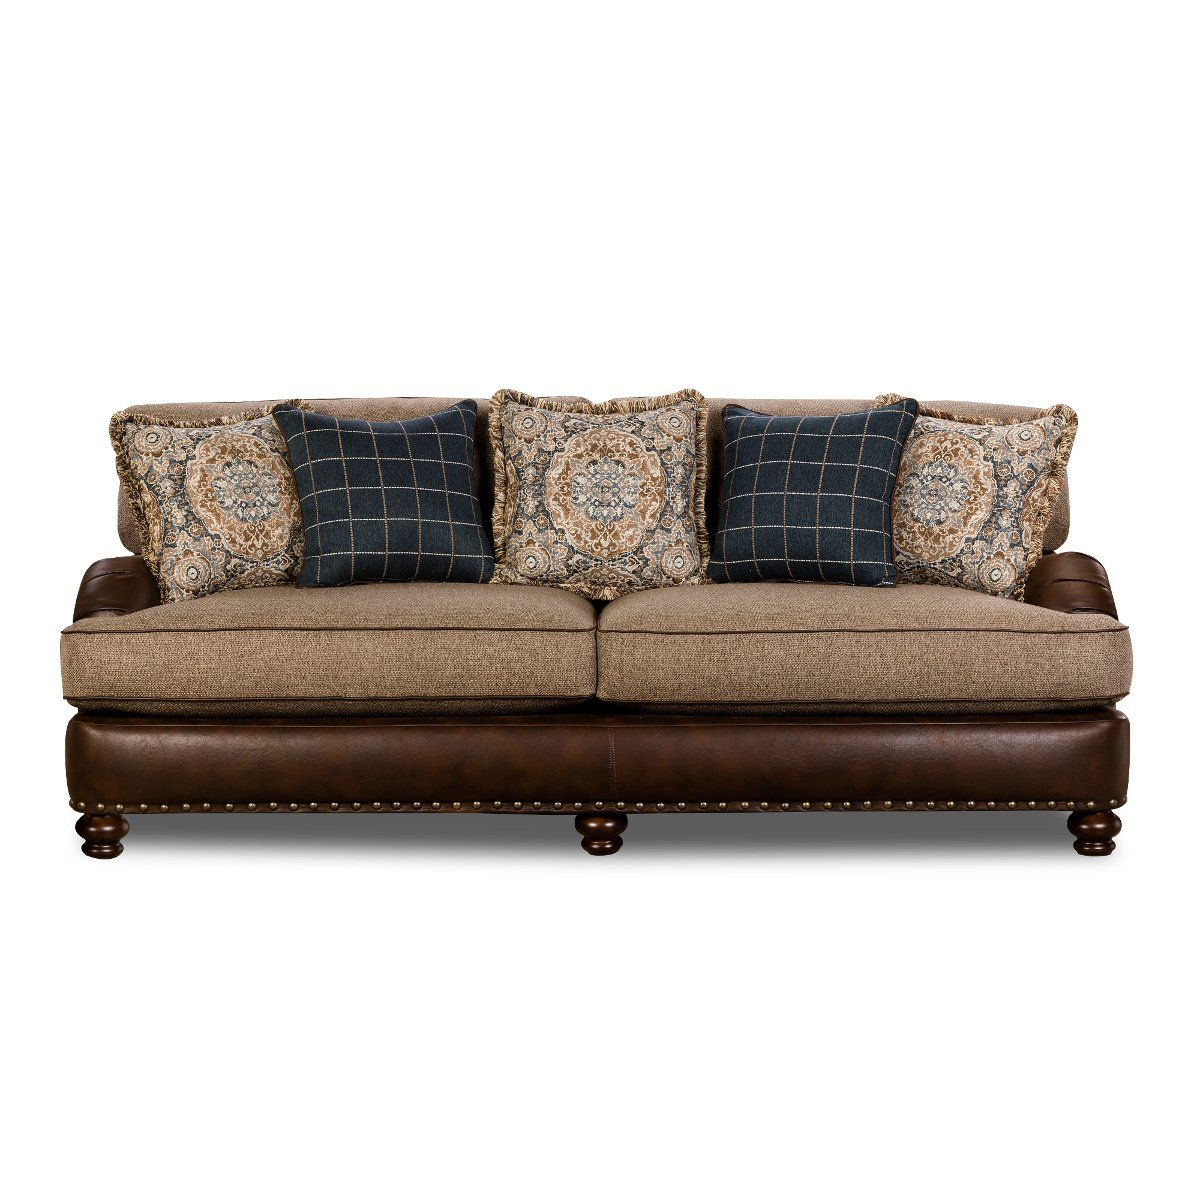 Fabulous Traditional Two Tone Brown Sofa Cognac In 2019 Sofa Gmtry Best Dining Table And Chair Ideas Images Gmtryco